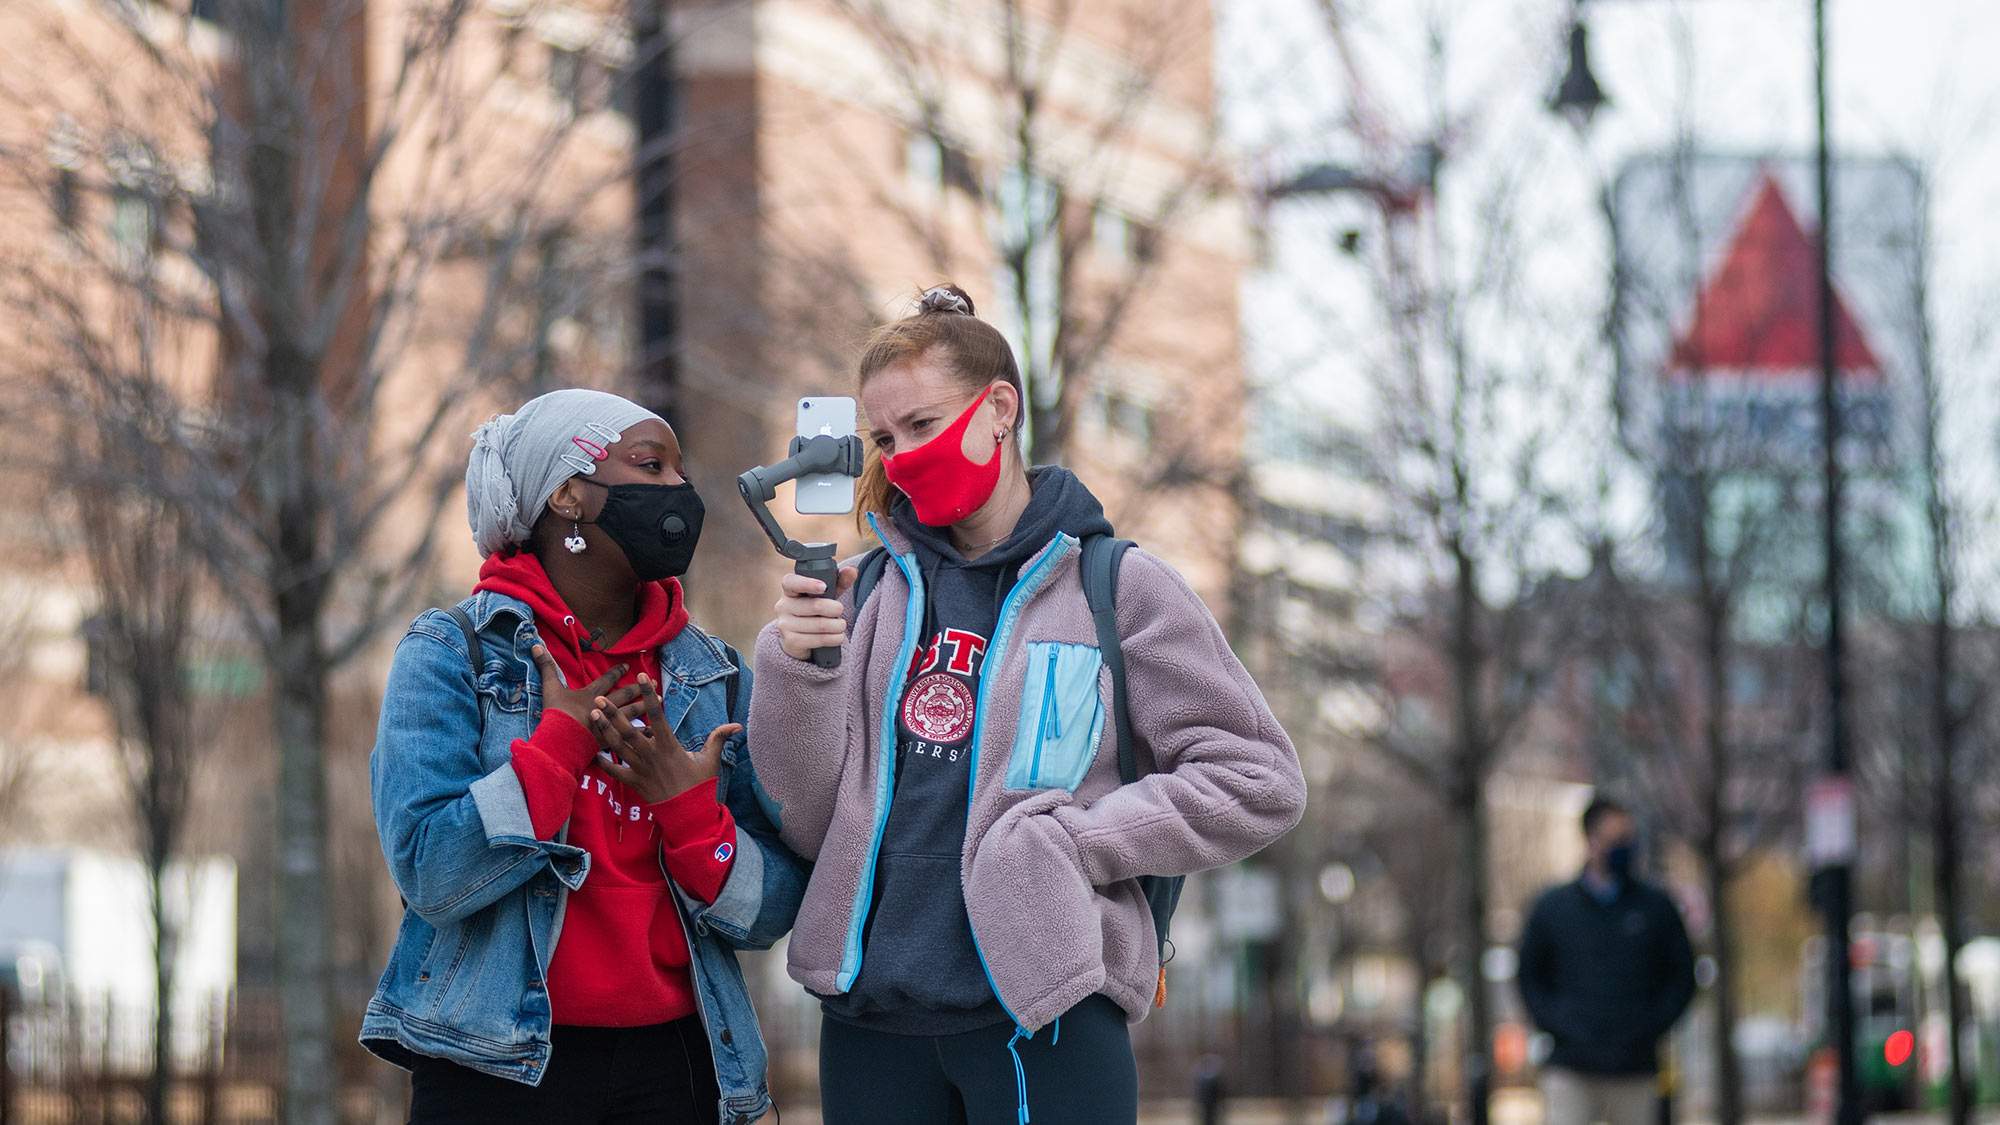 Photo of Hikima Lukomwa (SAR'22), community linked coordinator, in a red sweatshirt and jean jacket, with Jillian White (COM'22), in a pink fleece, a community development leader, while they give a virtual tour use a handheld phone tripod. The Citgo sign is seen blurred in the background.